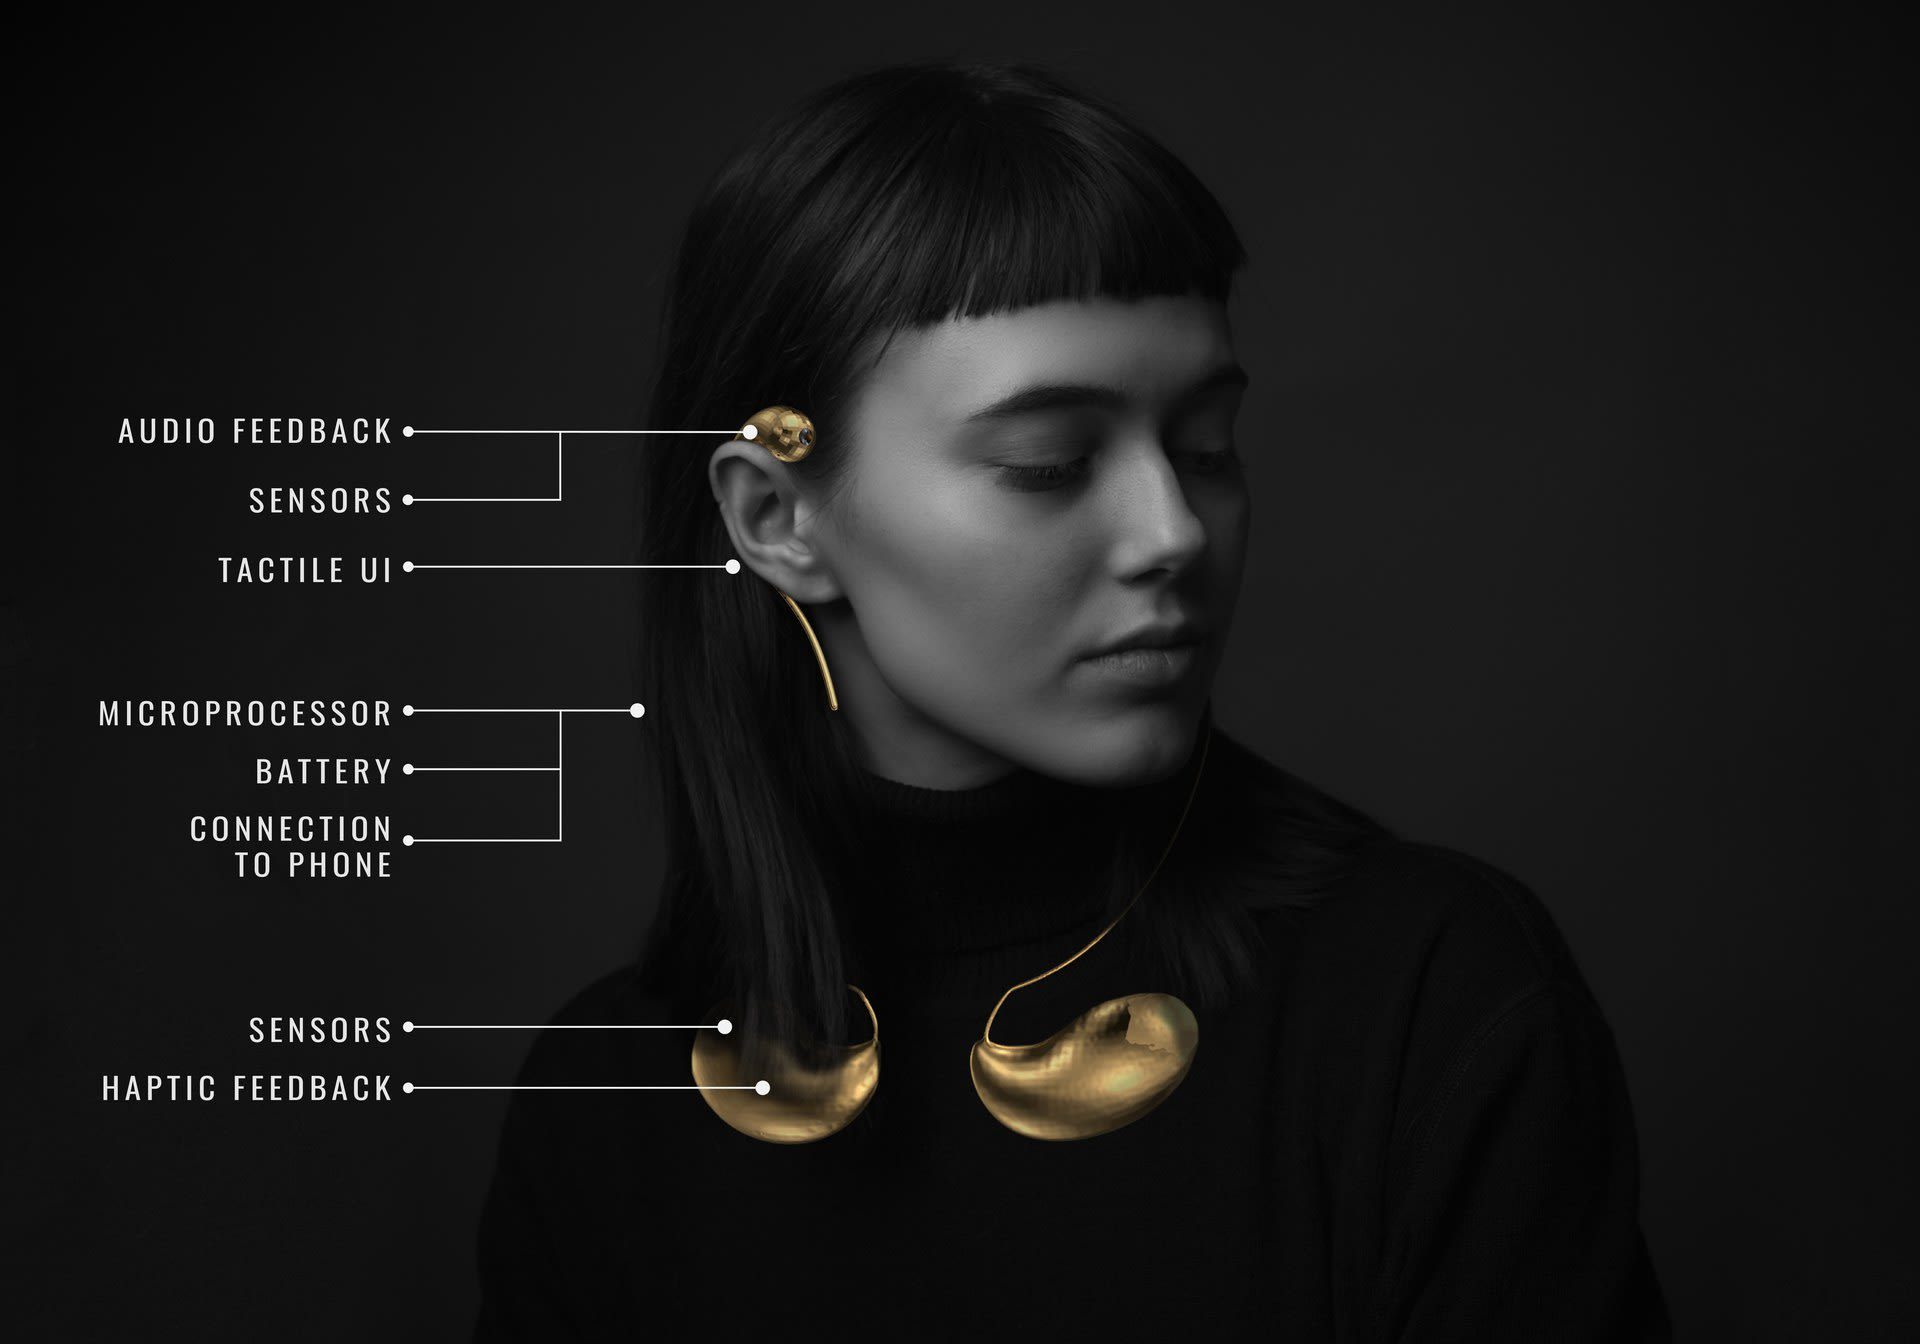 Schematic of Wearable